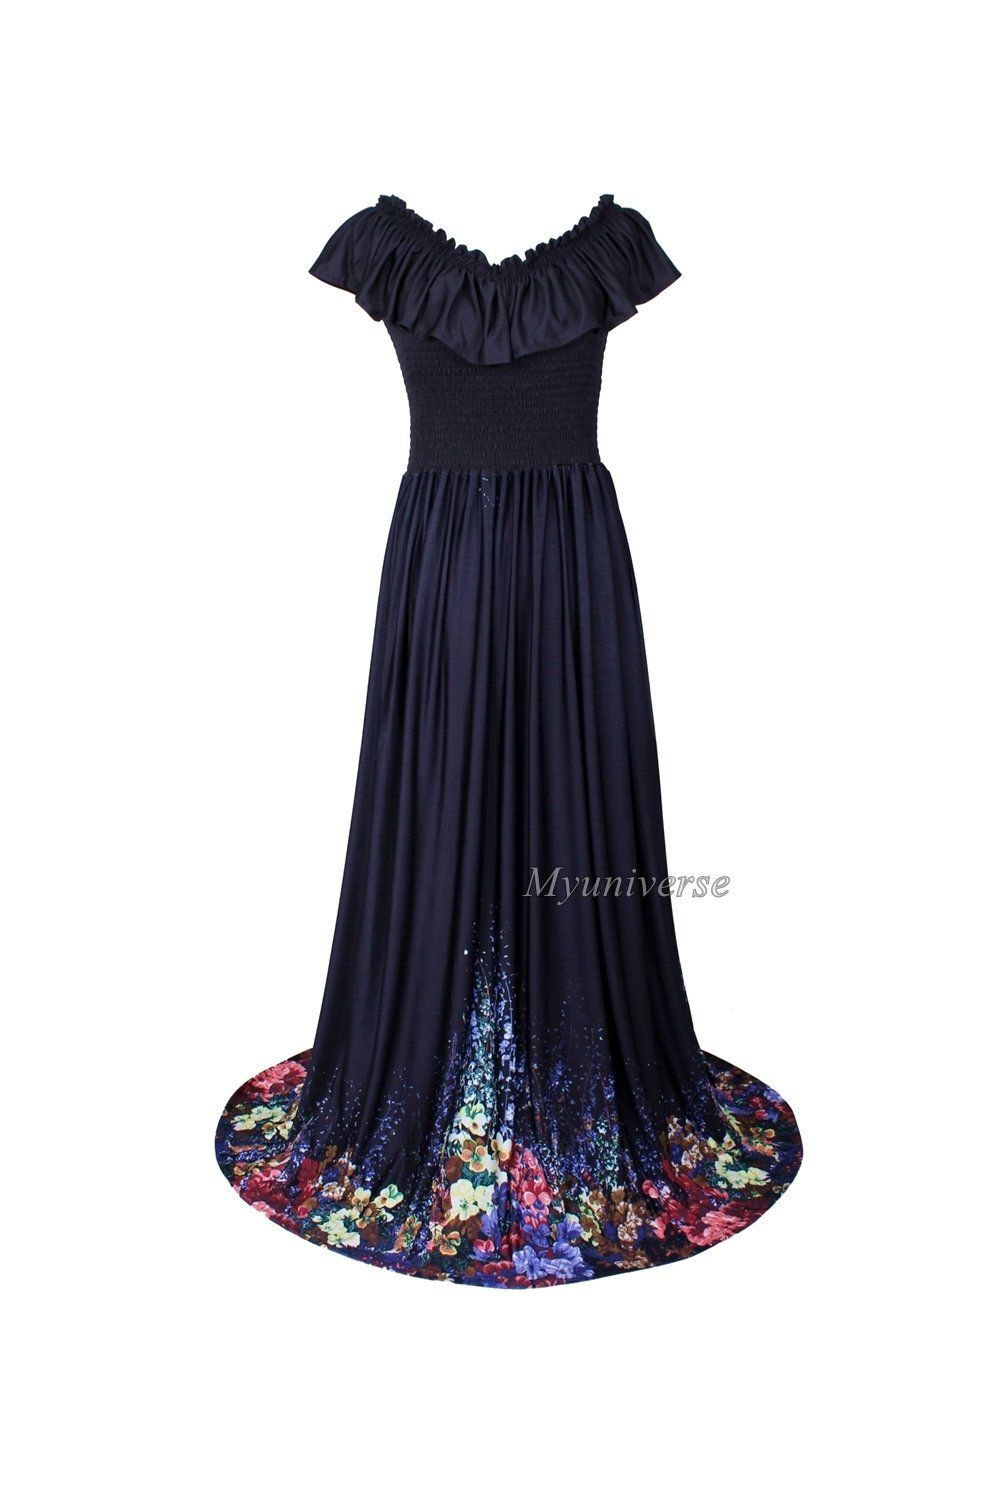 a6d4b18c7bf9 Maxi Dress for Women Plus Size Clothing Casual Short Sleeve Party Cocktail Long  Gala Gown Formal